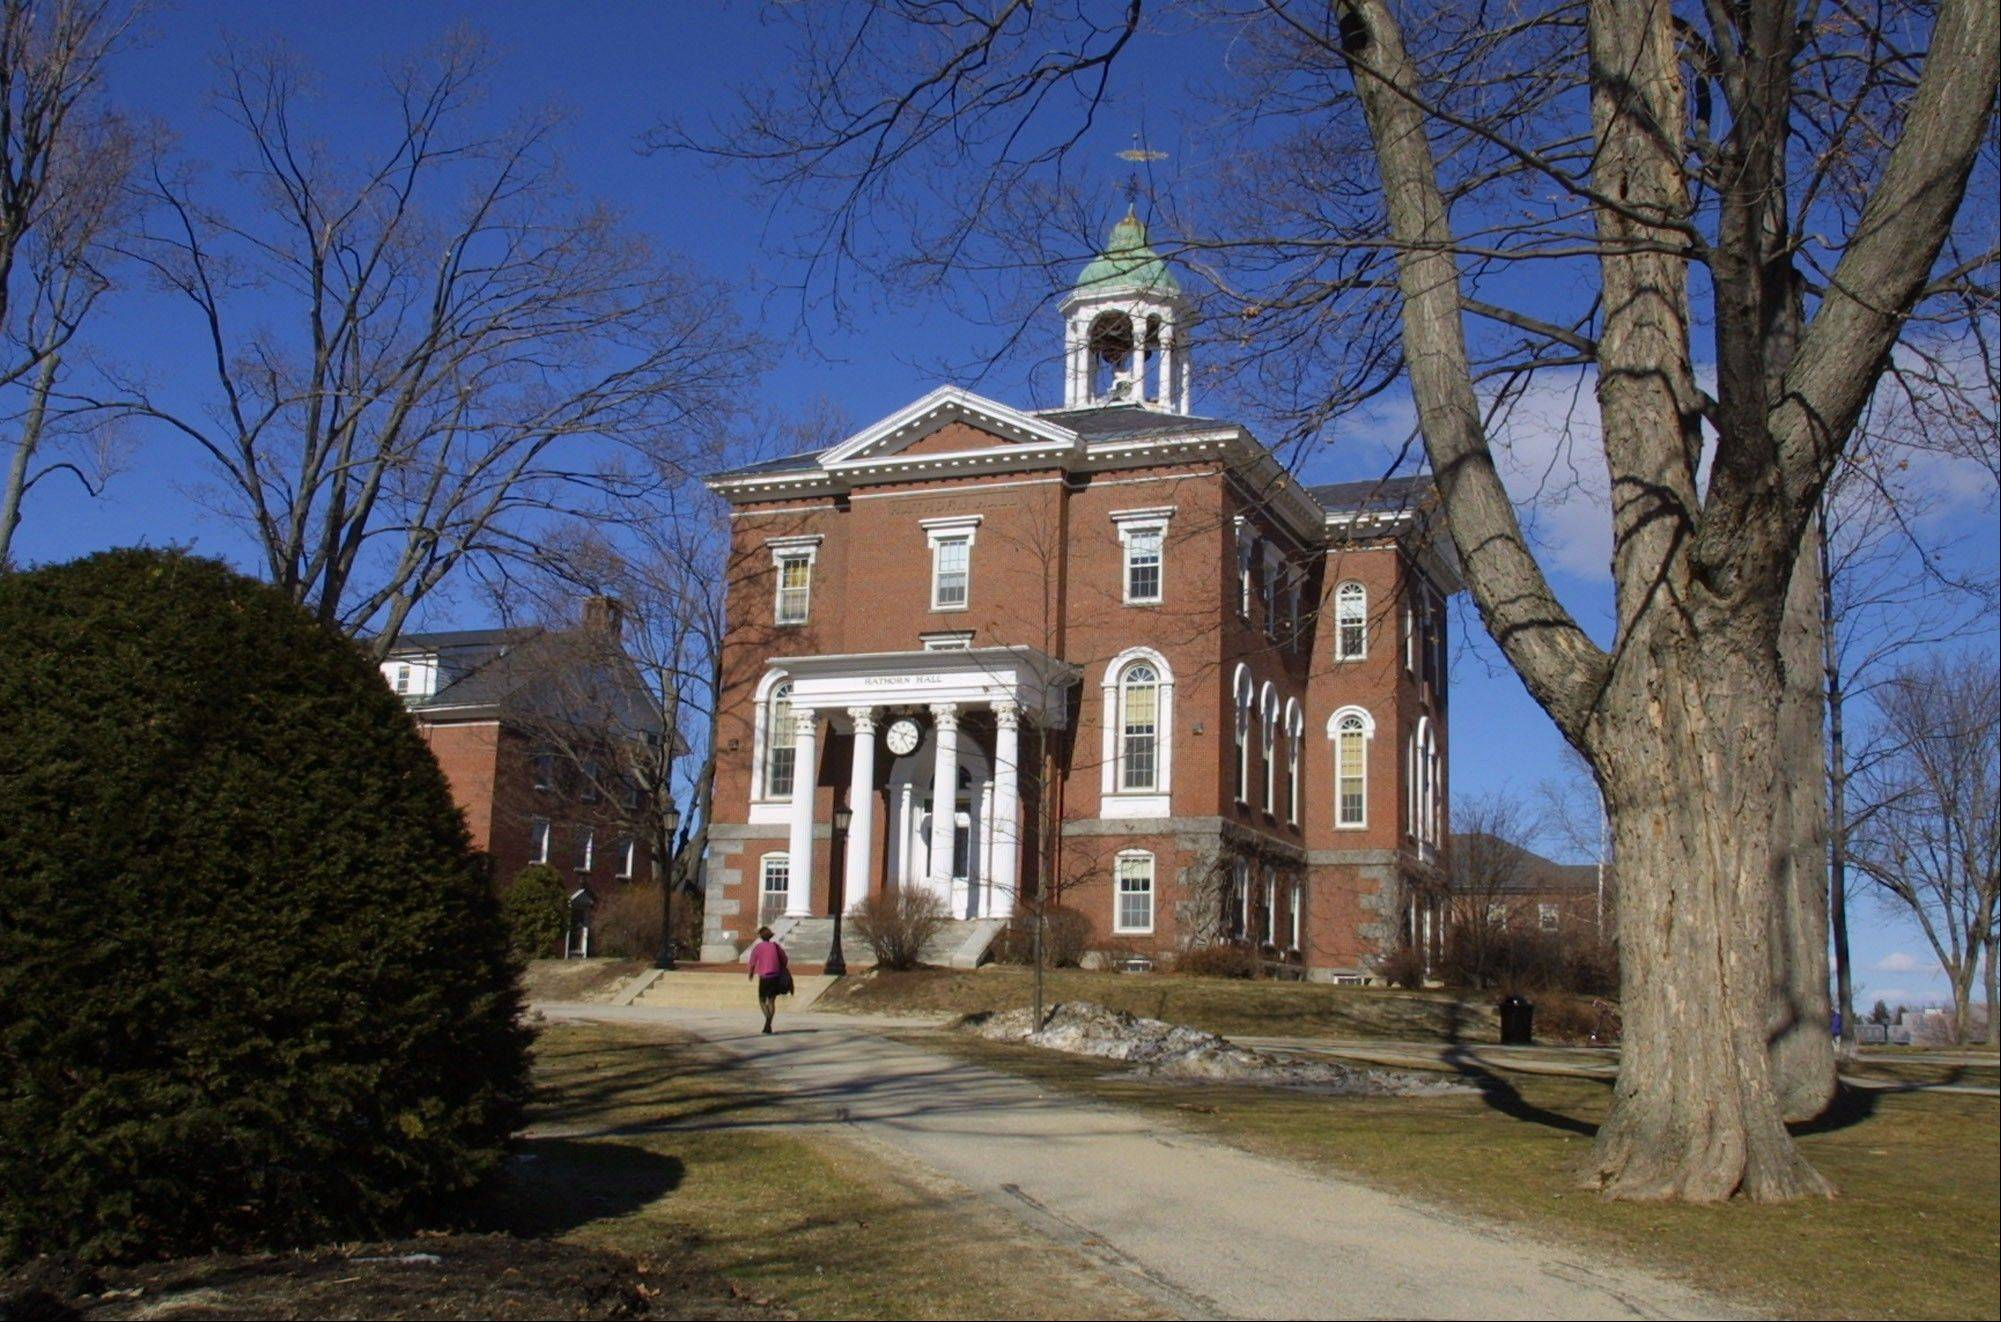 The cost of tuition, fees and room and board at Bates College in Lewiston, Maine, tops $50,000 a year.